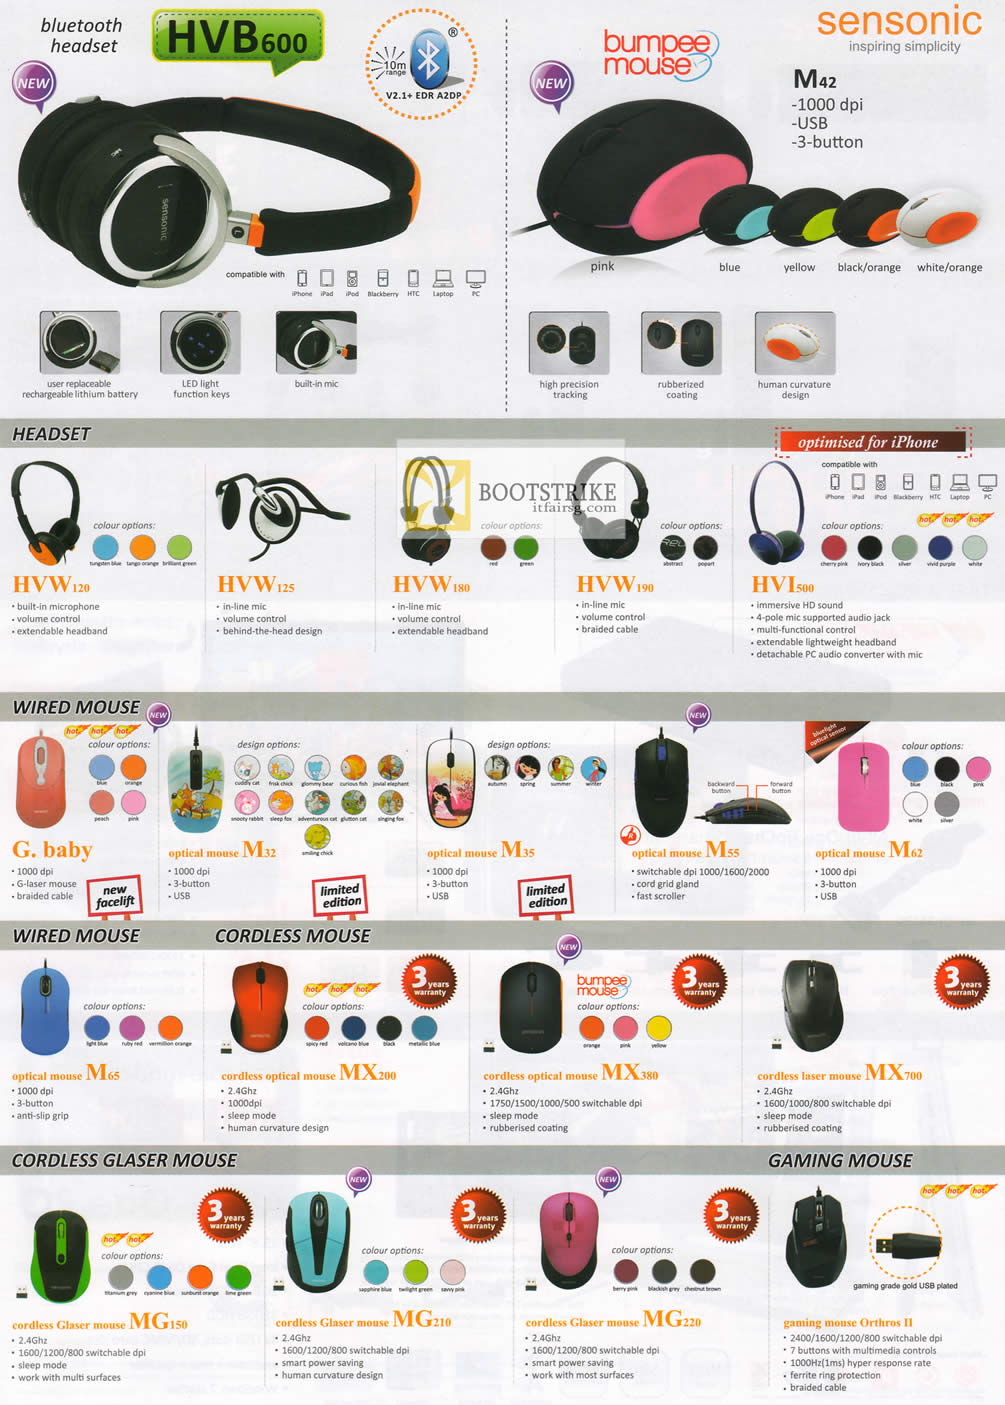 COMEX 2012 price list image brochure of Mclogic Sensonic Bluetooth Headsets, Mouse, Wireless, Glaser Mouse